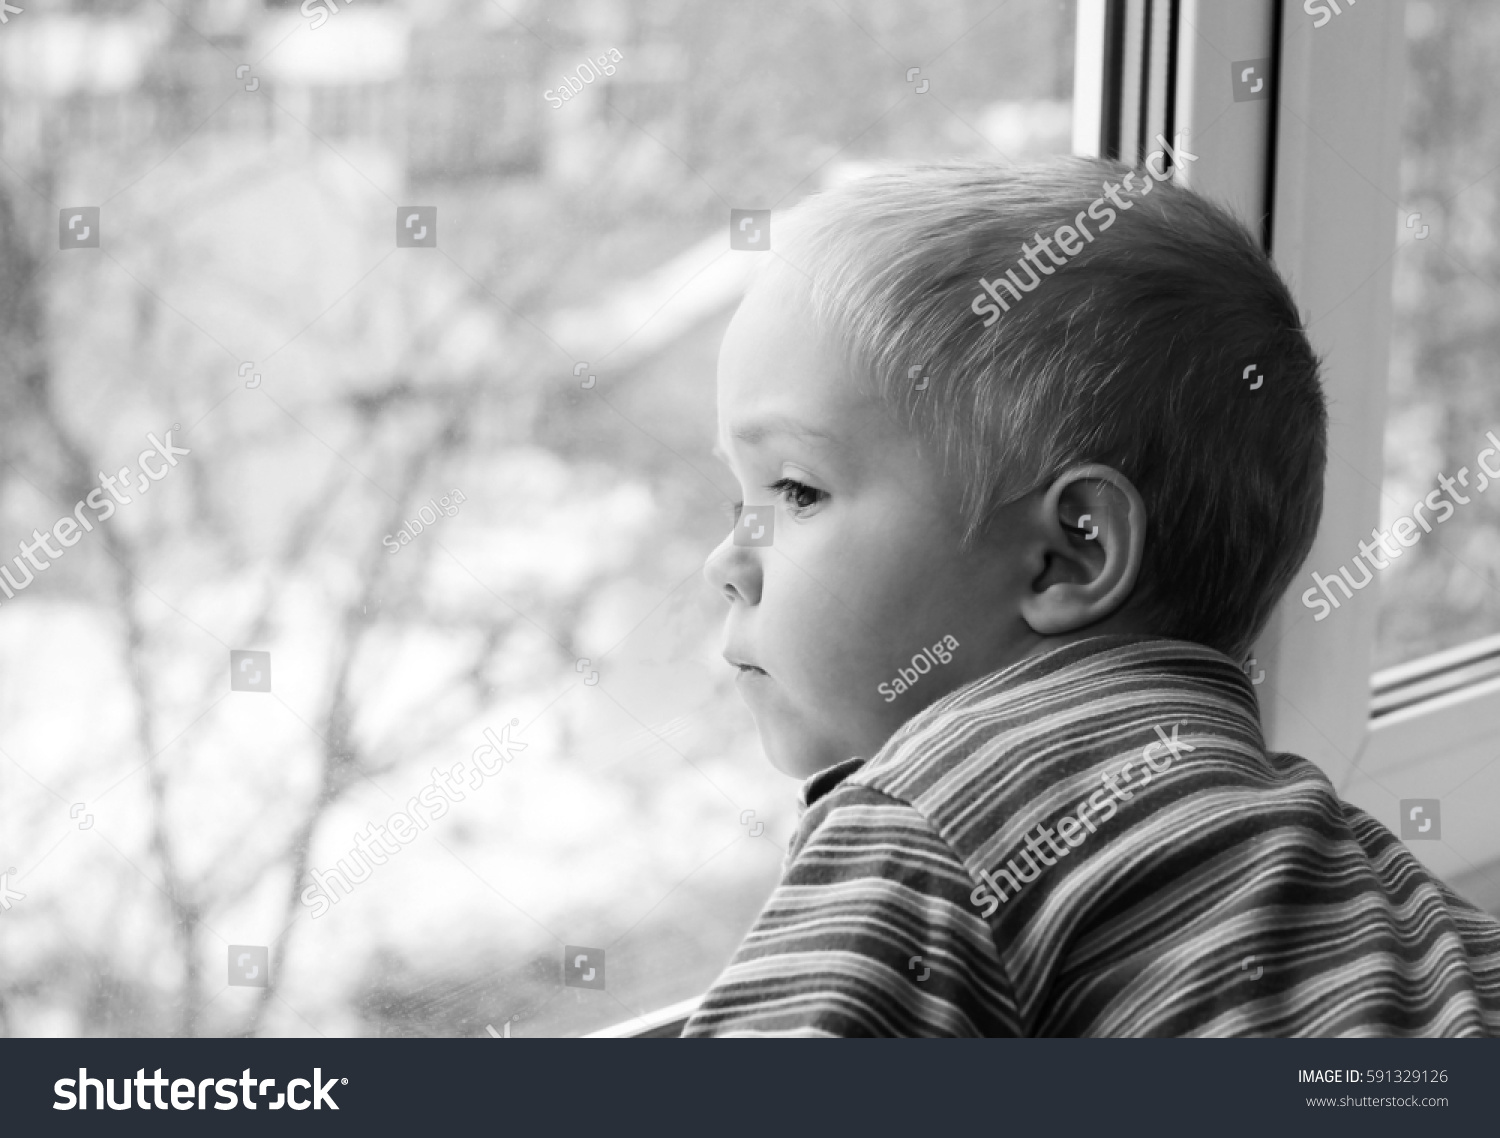 Sad Little Child Looking Out Window People Stock Image 591329126